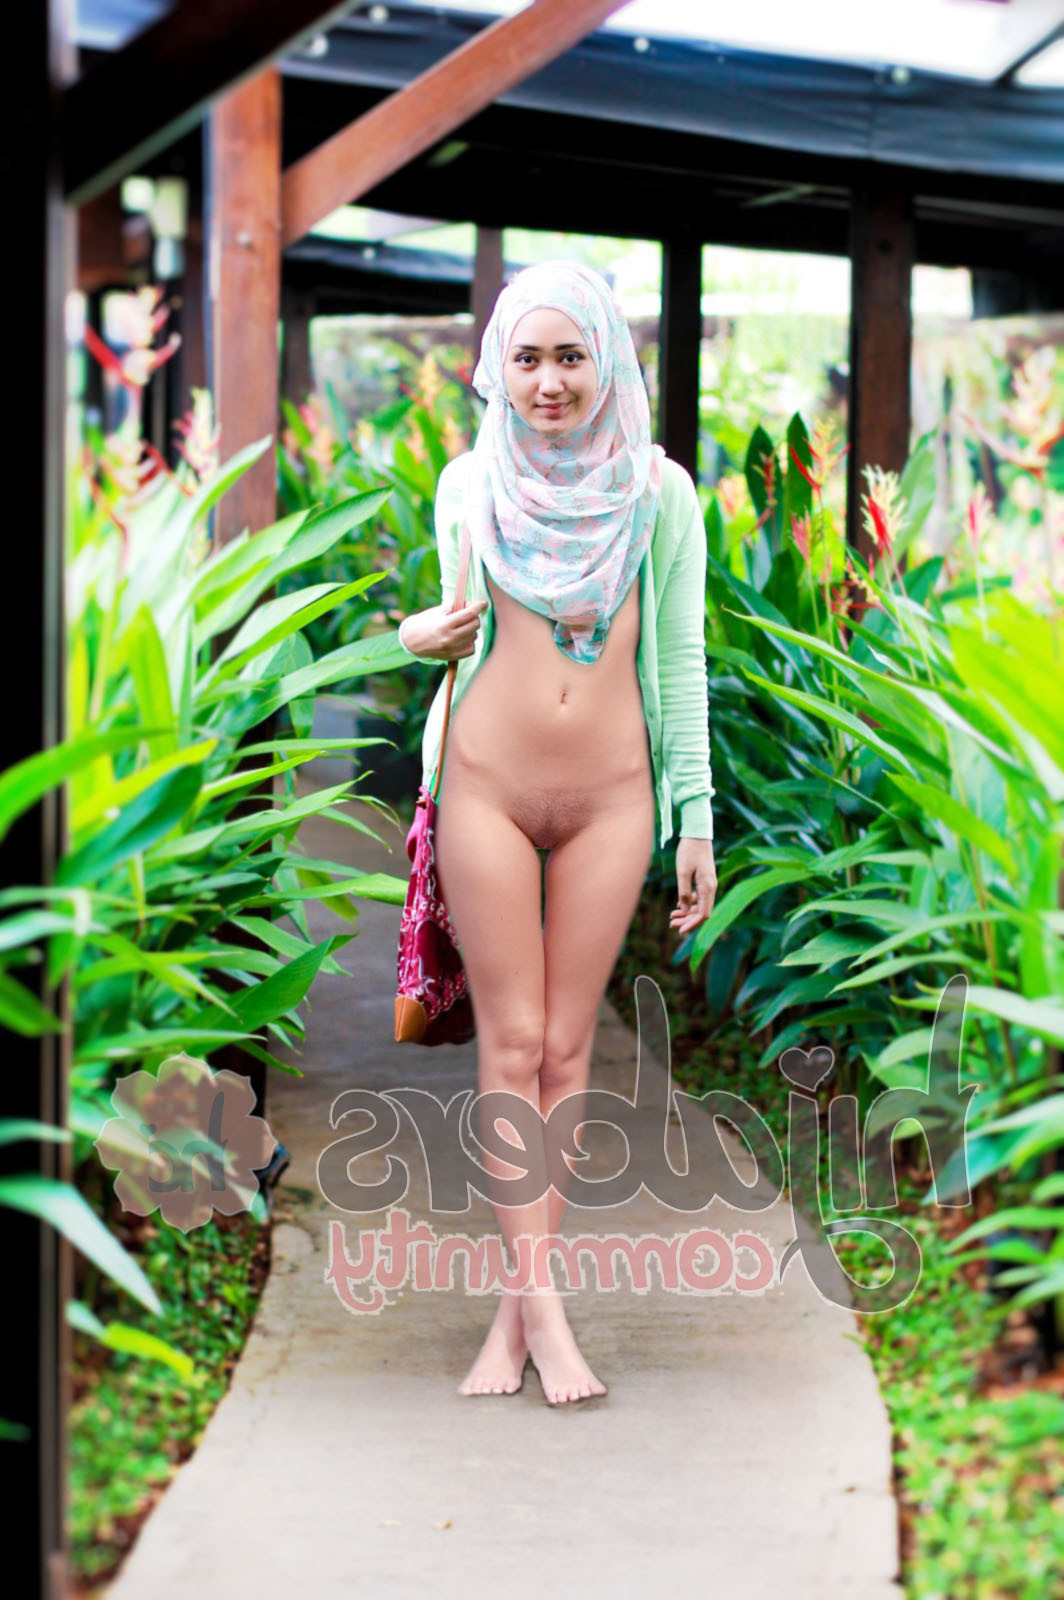 Nude hijab girls from malaysia and indonesia 013 - Muslim Girl Nude Sexy Photos Nangi Images